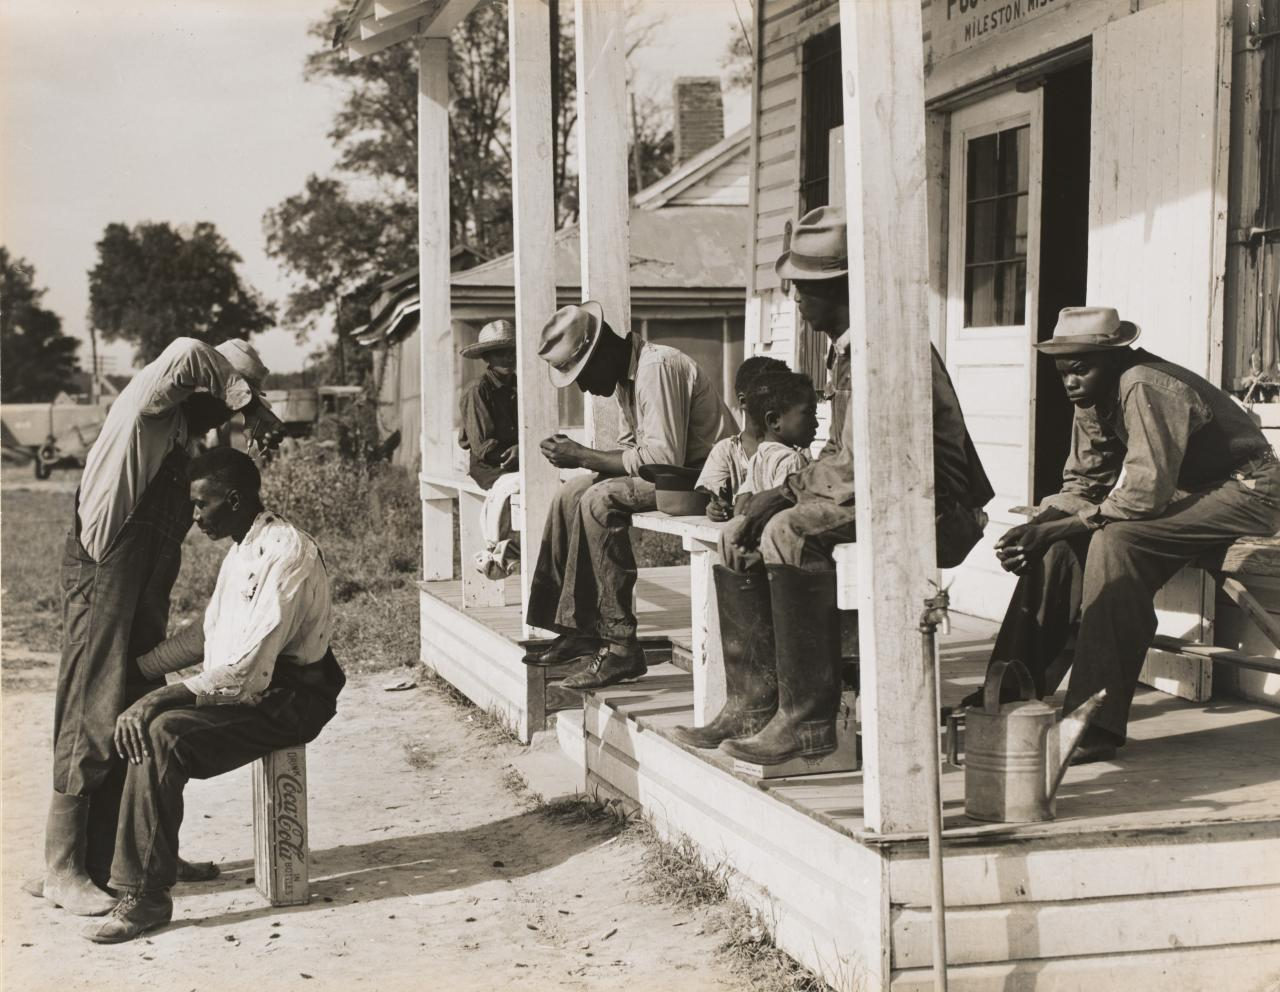 Haircutting in front of plantation store after being paid off on Saturday, Mileston Plantation, Mississippi Delta